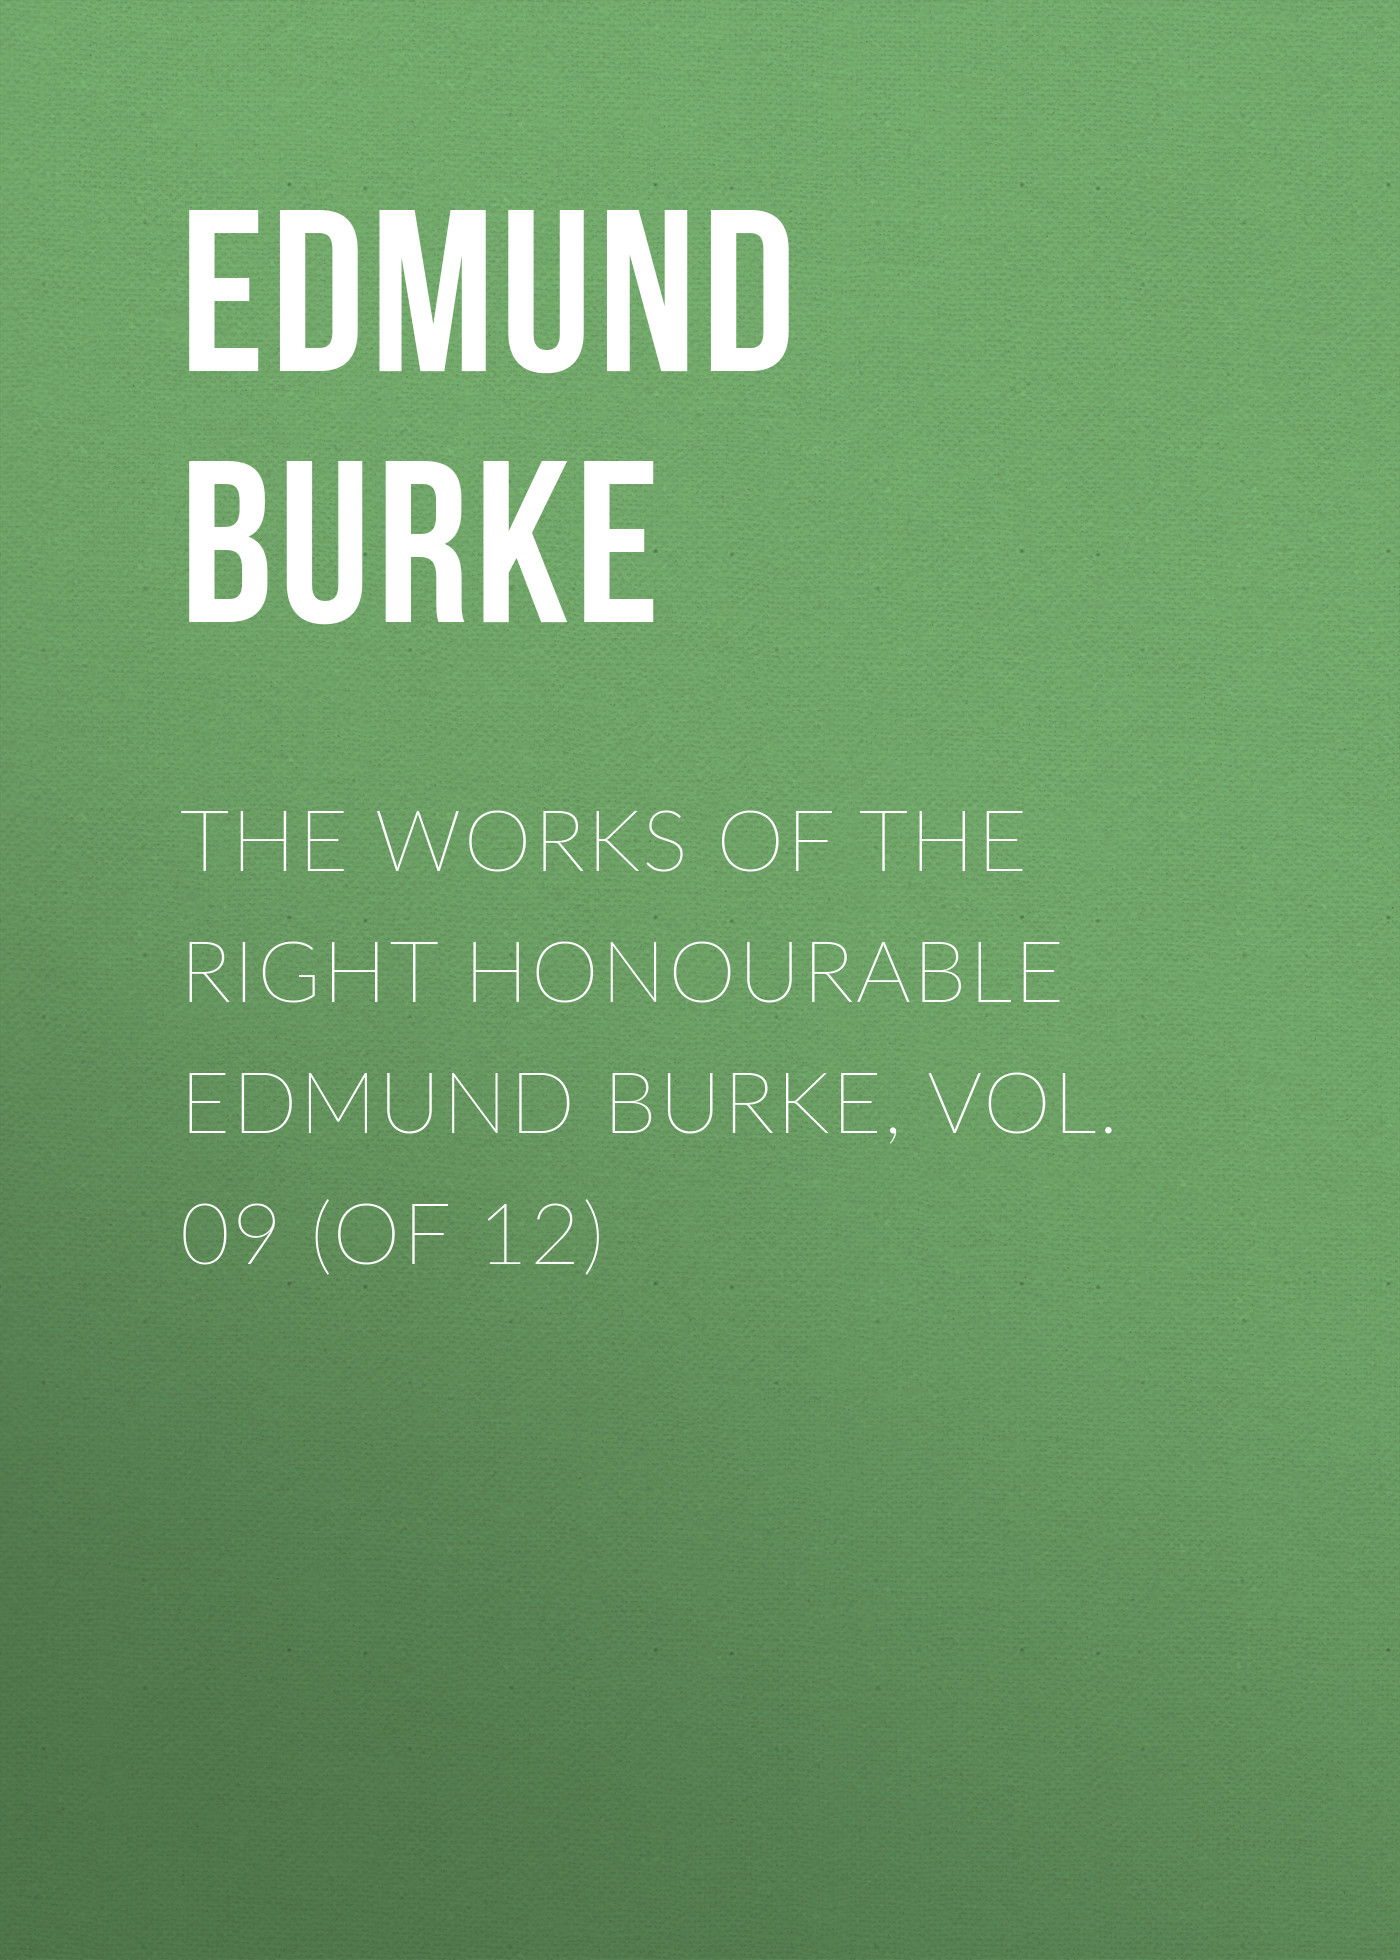 Edmund Burke The Works of the Right Honourable Edmund Burke, Vol. 09 (of 12) edmund burke the works of the right honourable edmund burke vol 09 of 12